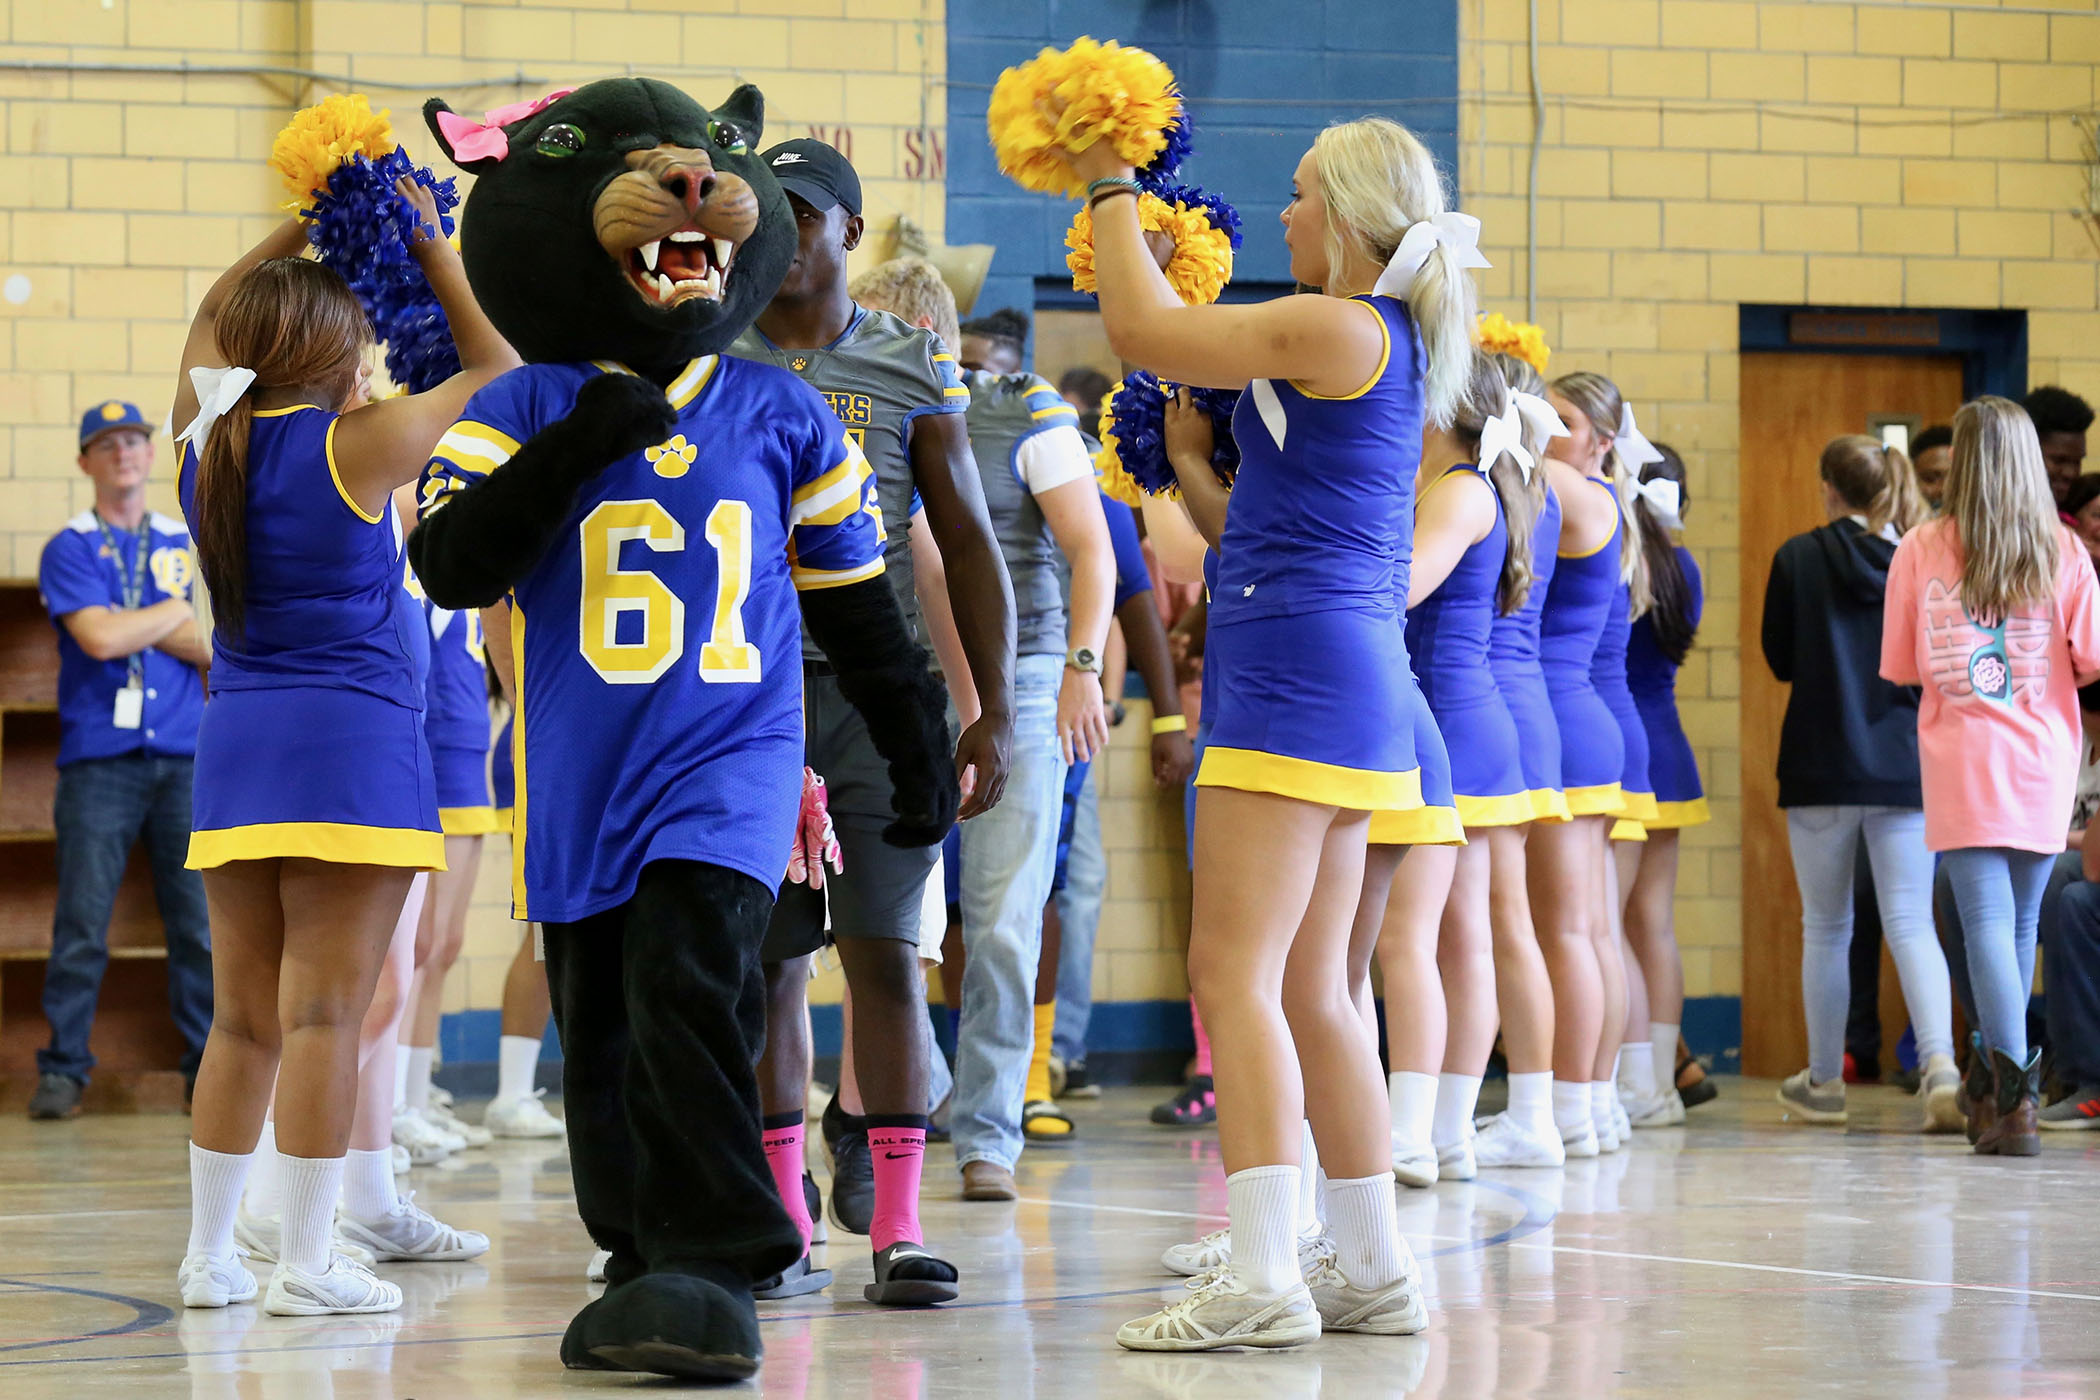 The Panther mascot performs at the QJH pep rally.